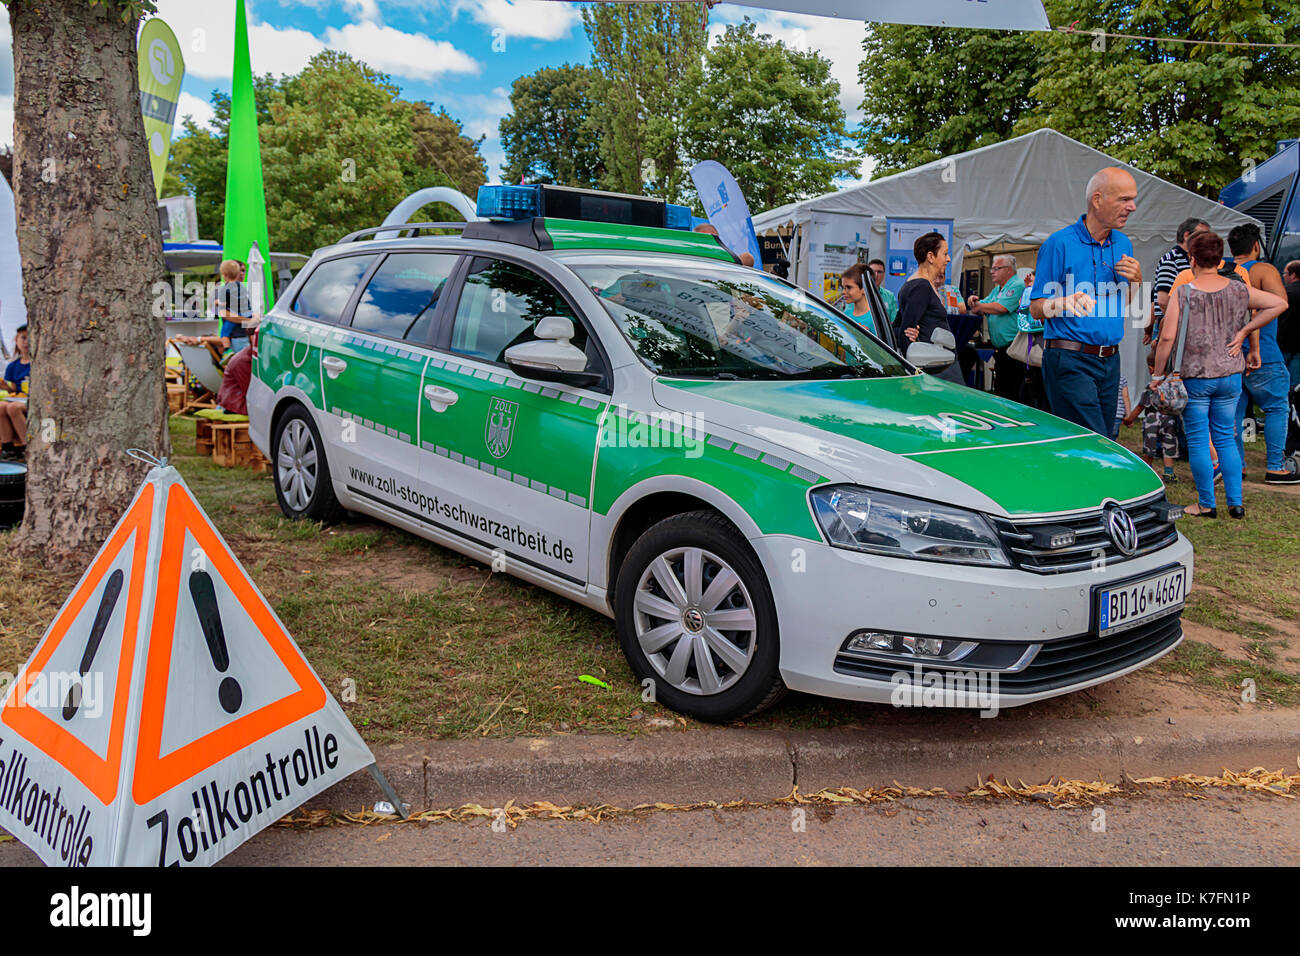 Zollkontrolle Customs Car In Saarbrucken, Germany - Stock Image